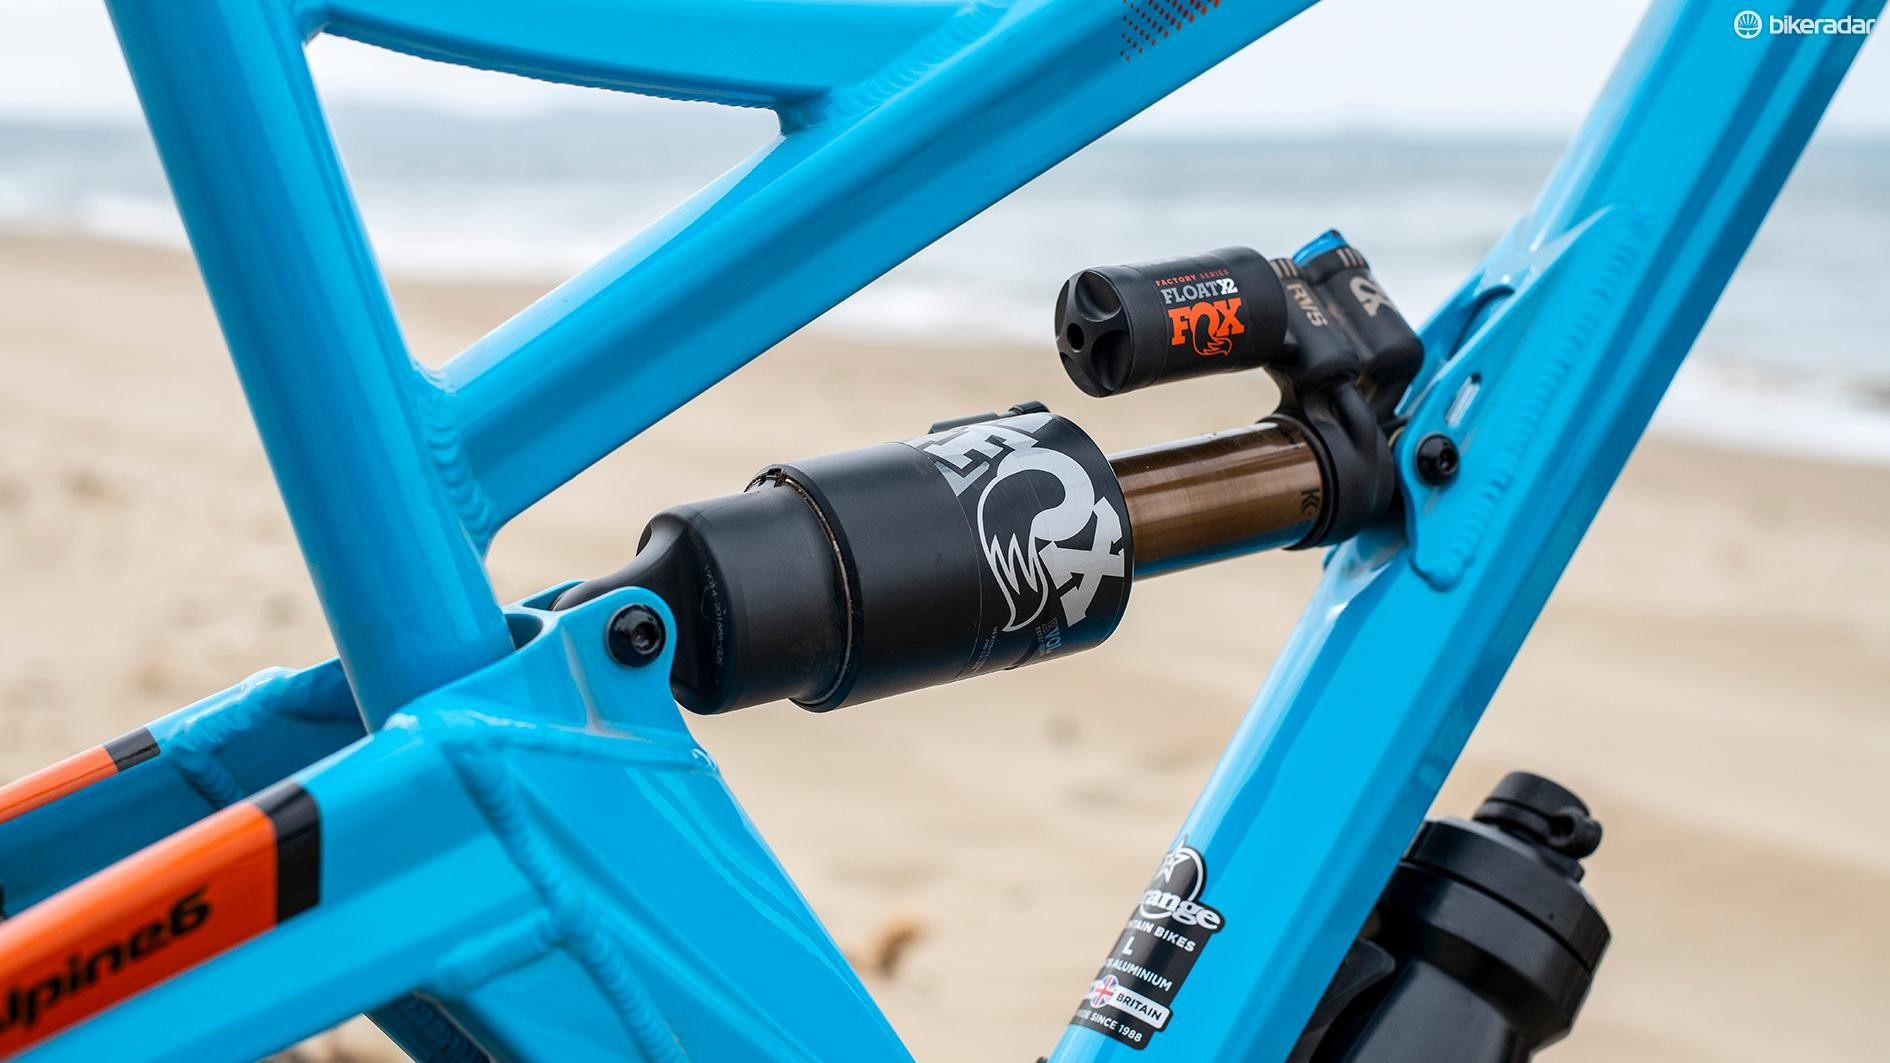 The Factory bike is fitted with the incredible Fox Factory Float X2 shock